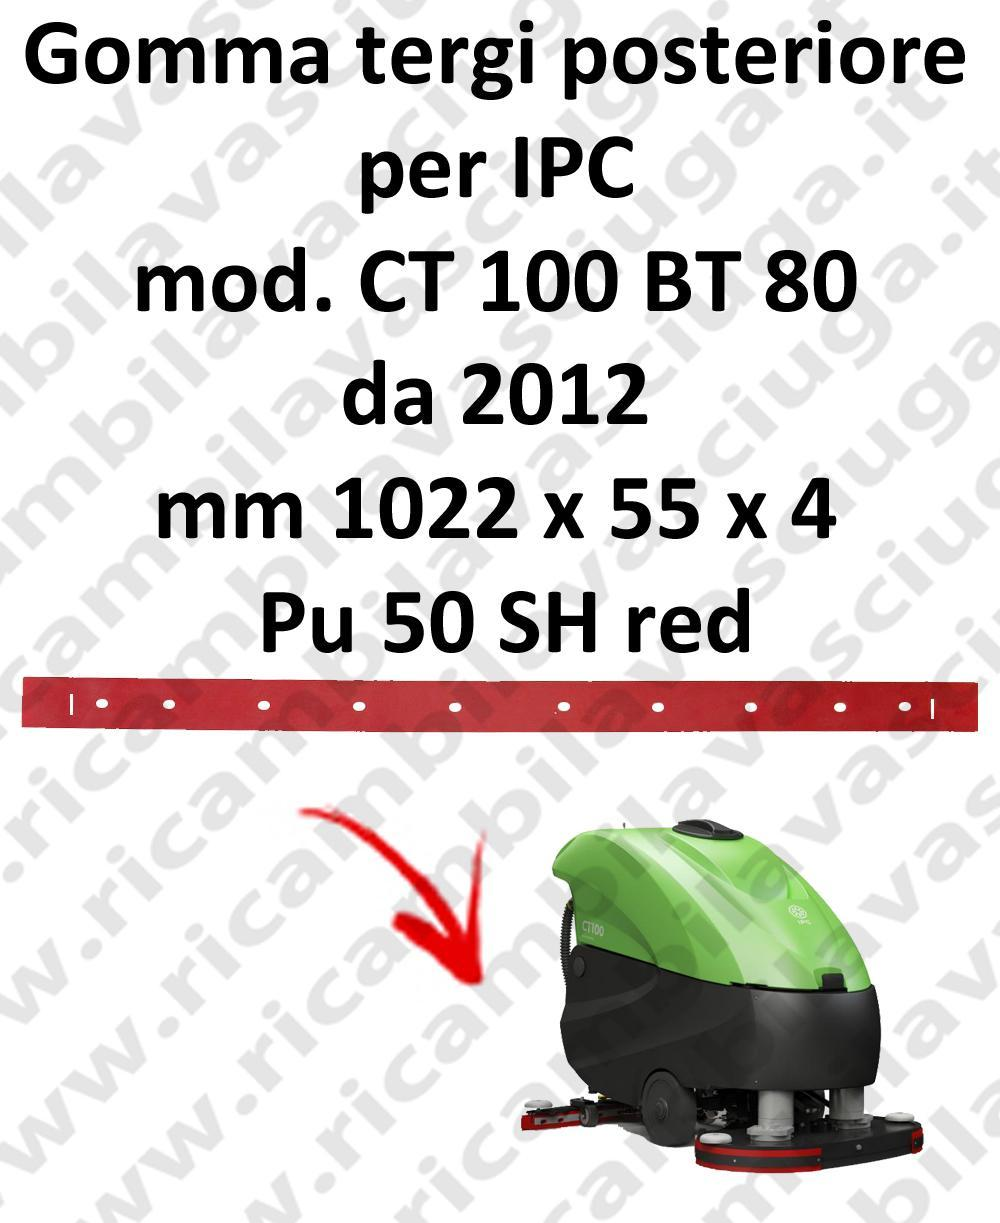 CT 100 BT 80 from 2012 squeegee rubber back for IPC